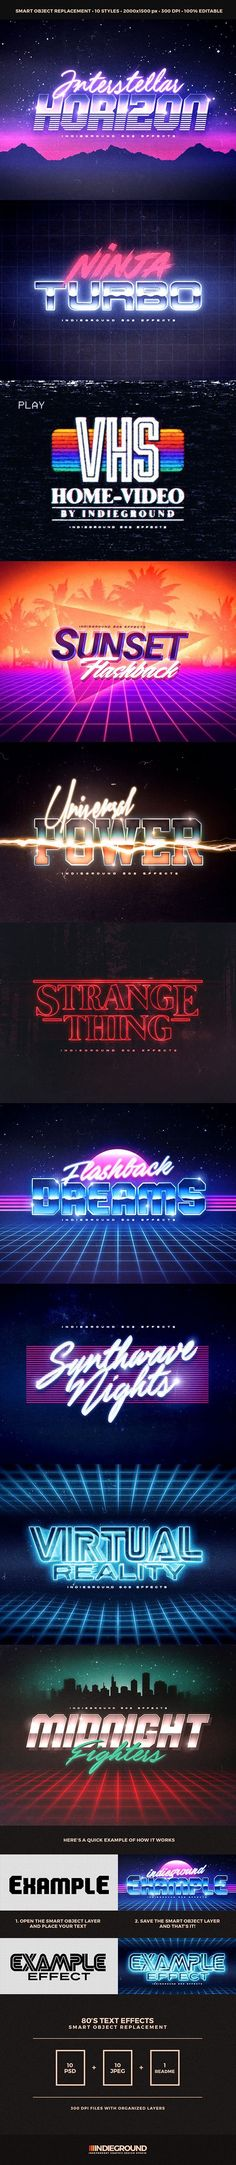 80s Text Effects by Lyova12 on DeviantArt